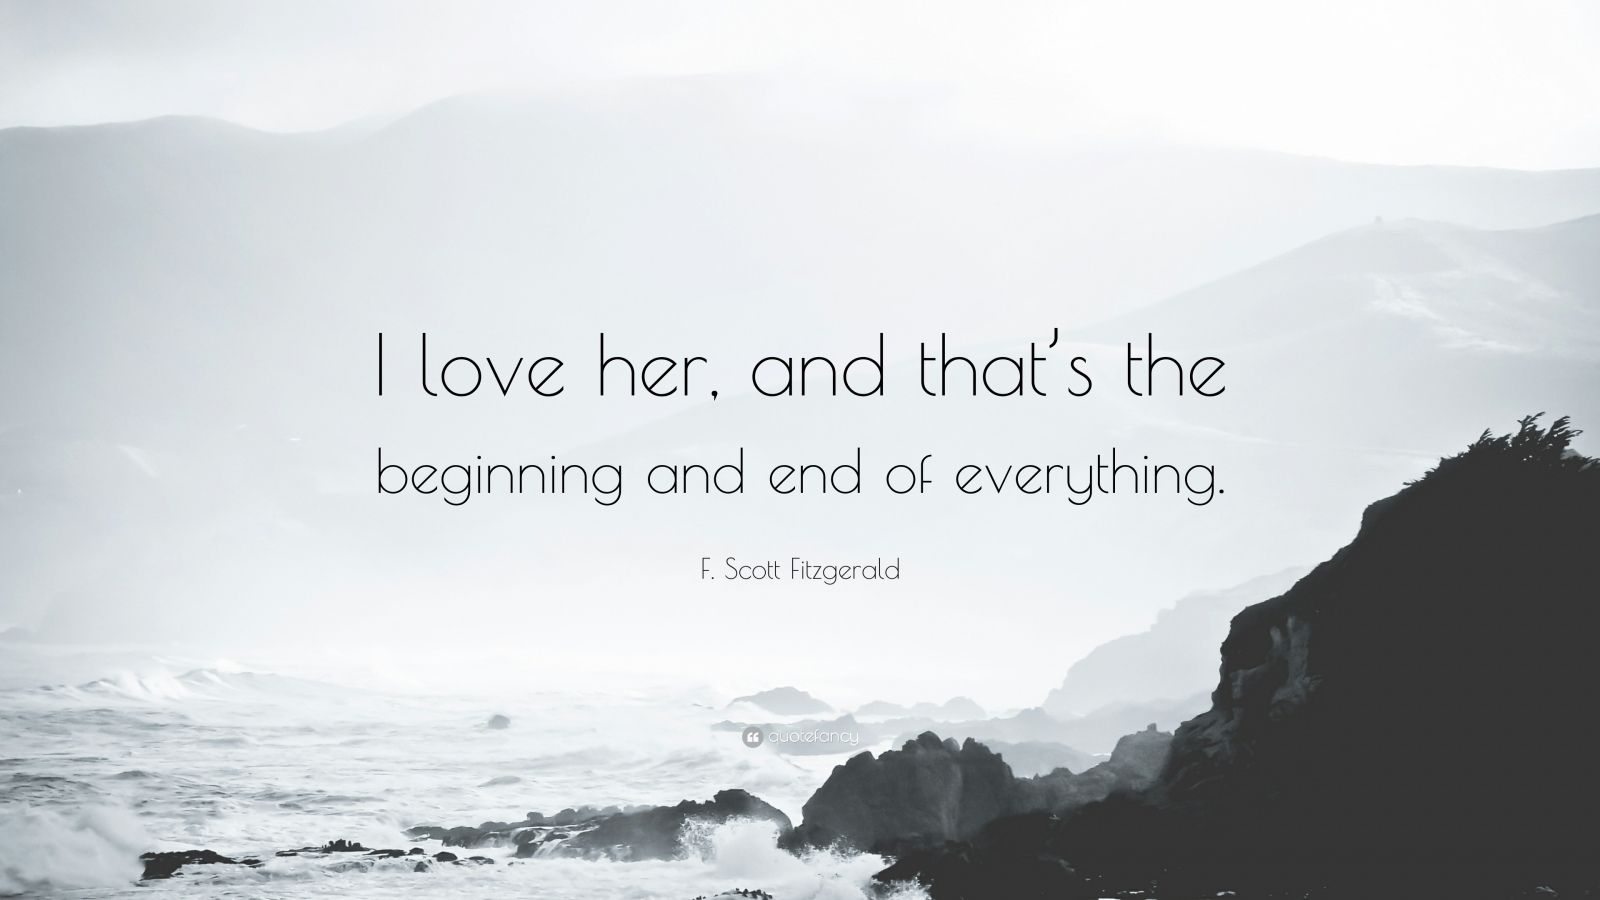 Love Quotes F Scott Fitzgerald Fscott Fitzgerald Quotes 100 Wallpapers  Quotefancy